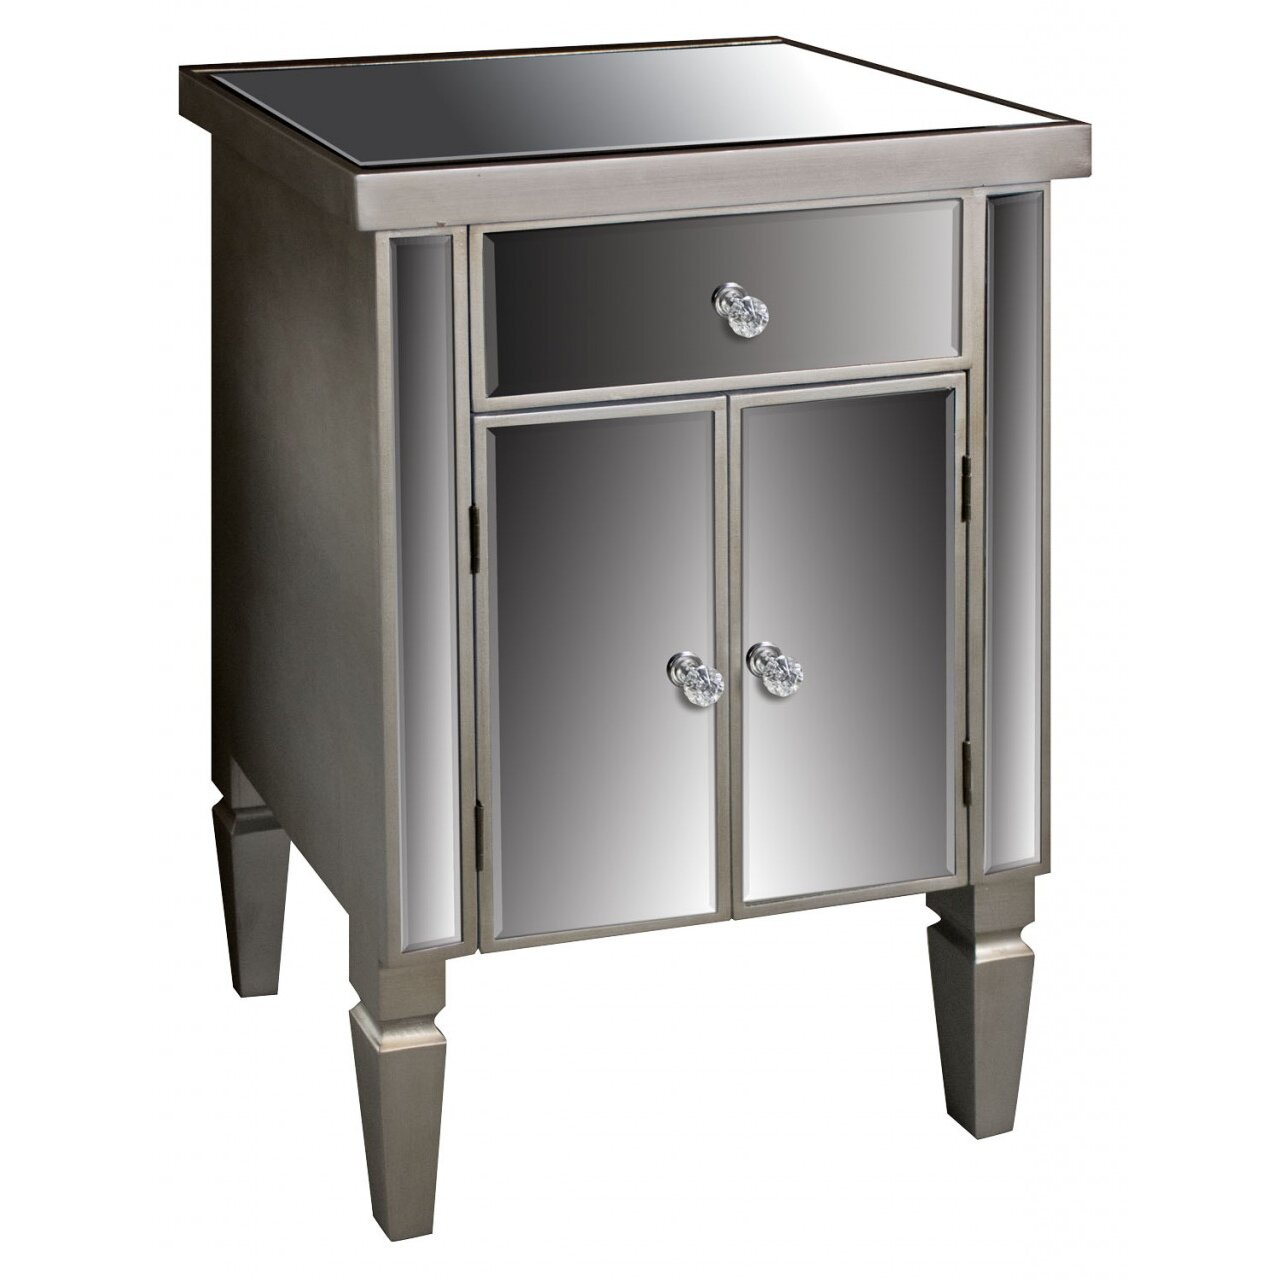 Ch teau chic museum mirrored 1 drawer 2 door cabinet for 1 drawer 2 door cabinet